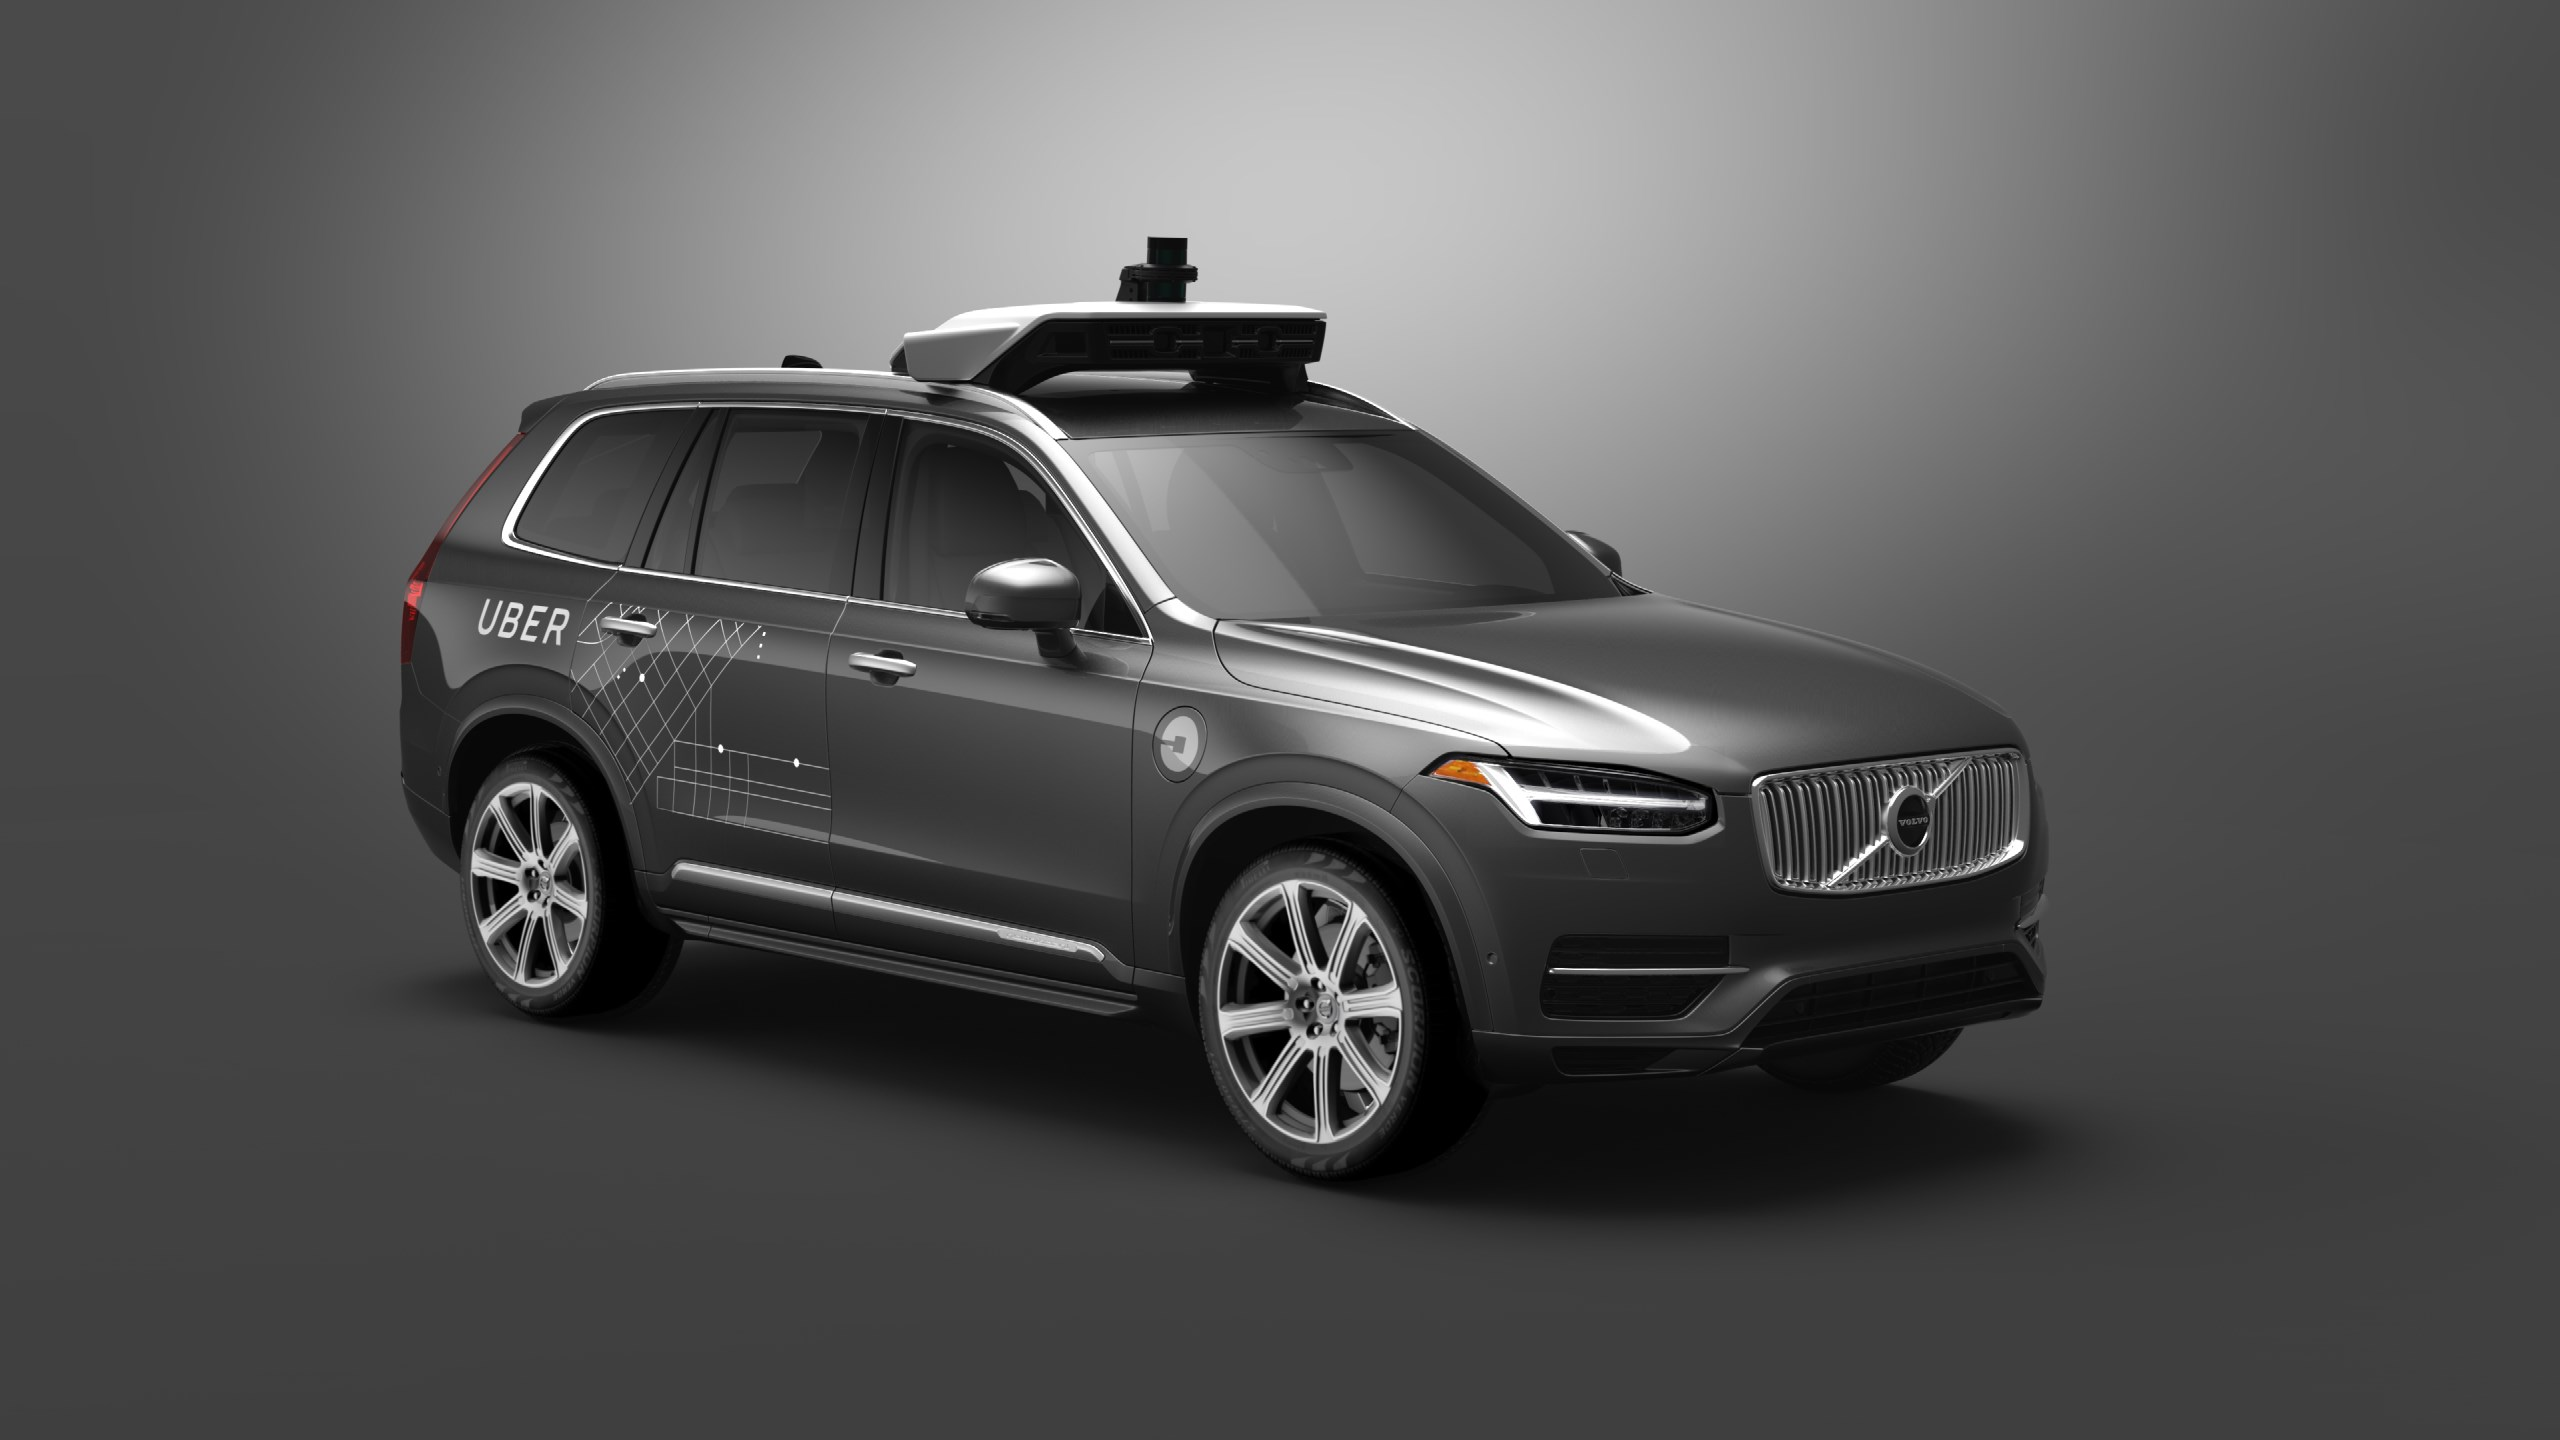 Uber Black Cars List >> Uber and Volvo partner up, robot ride-sharing starts this summer | Ars Technica